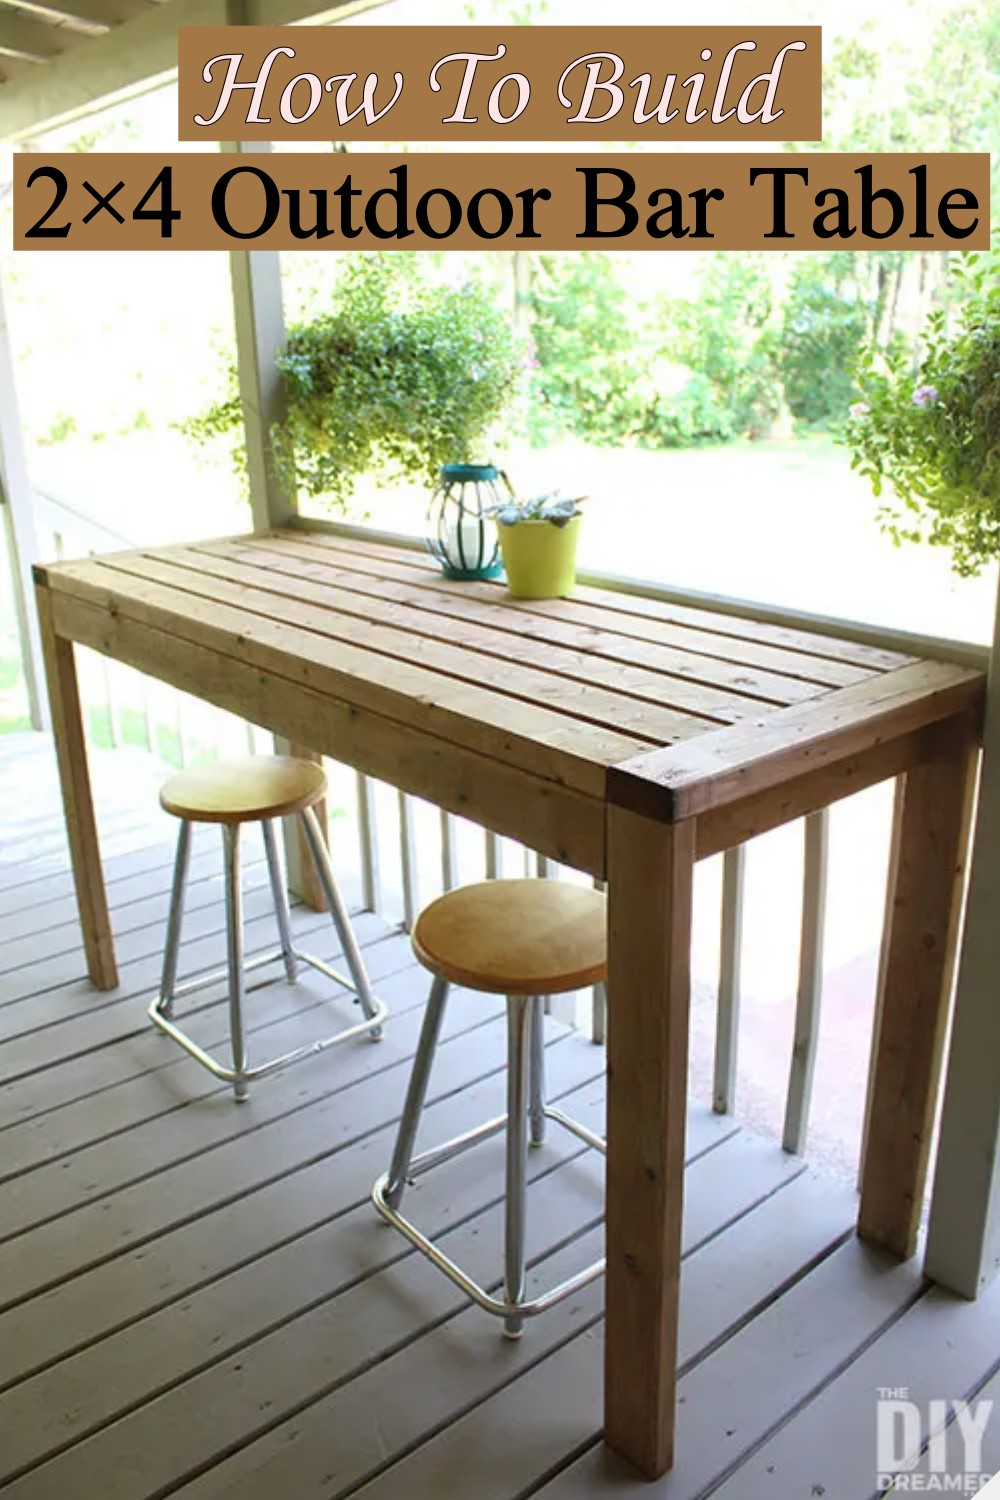 How To Build A 2×4 Outdoor Bar Table